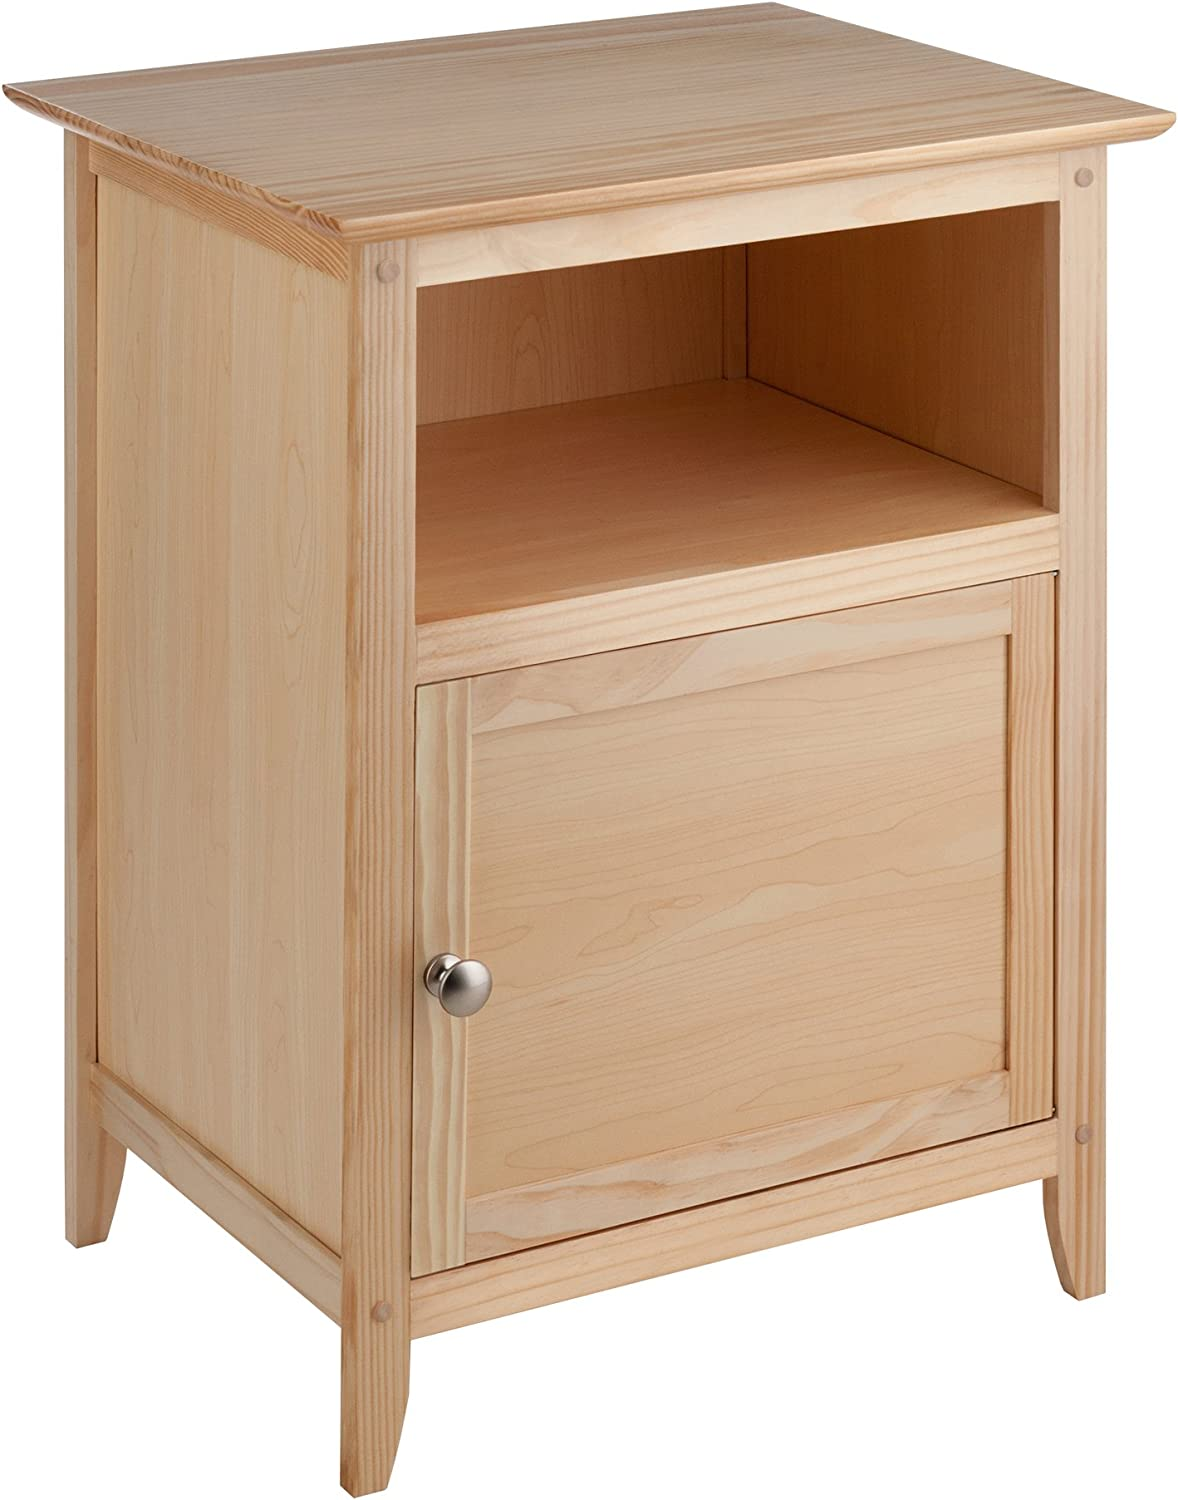 Winsome Wood End Table Night Stand with Door and Shelf, Natural